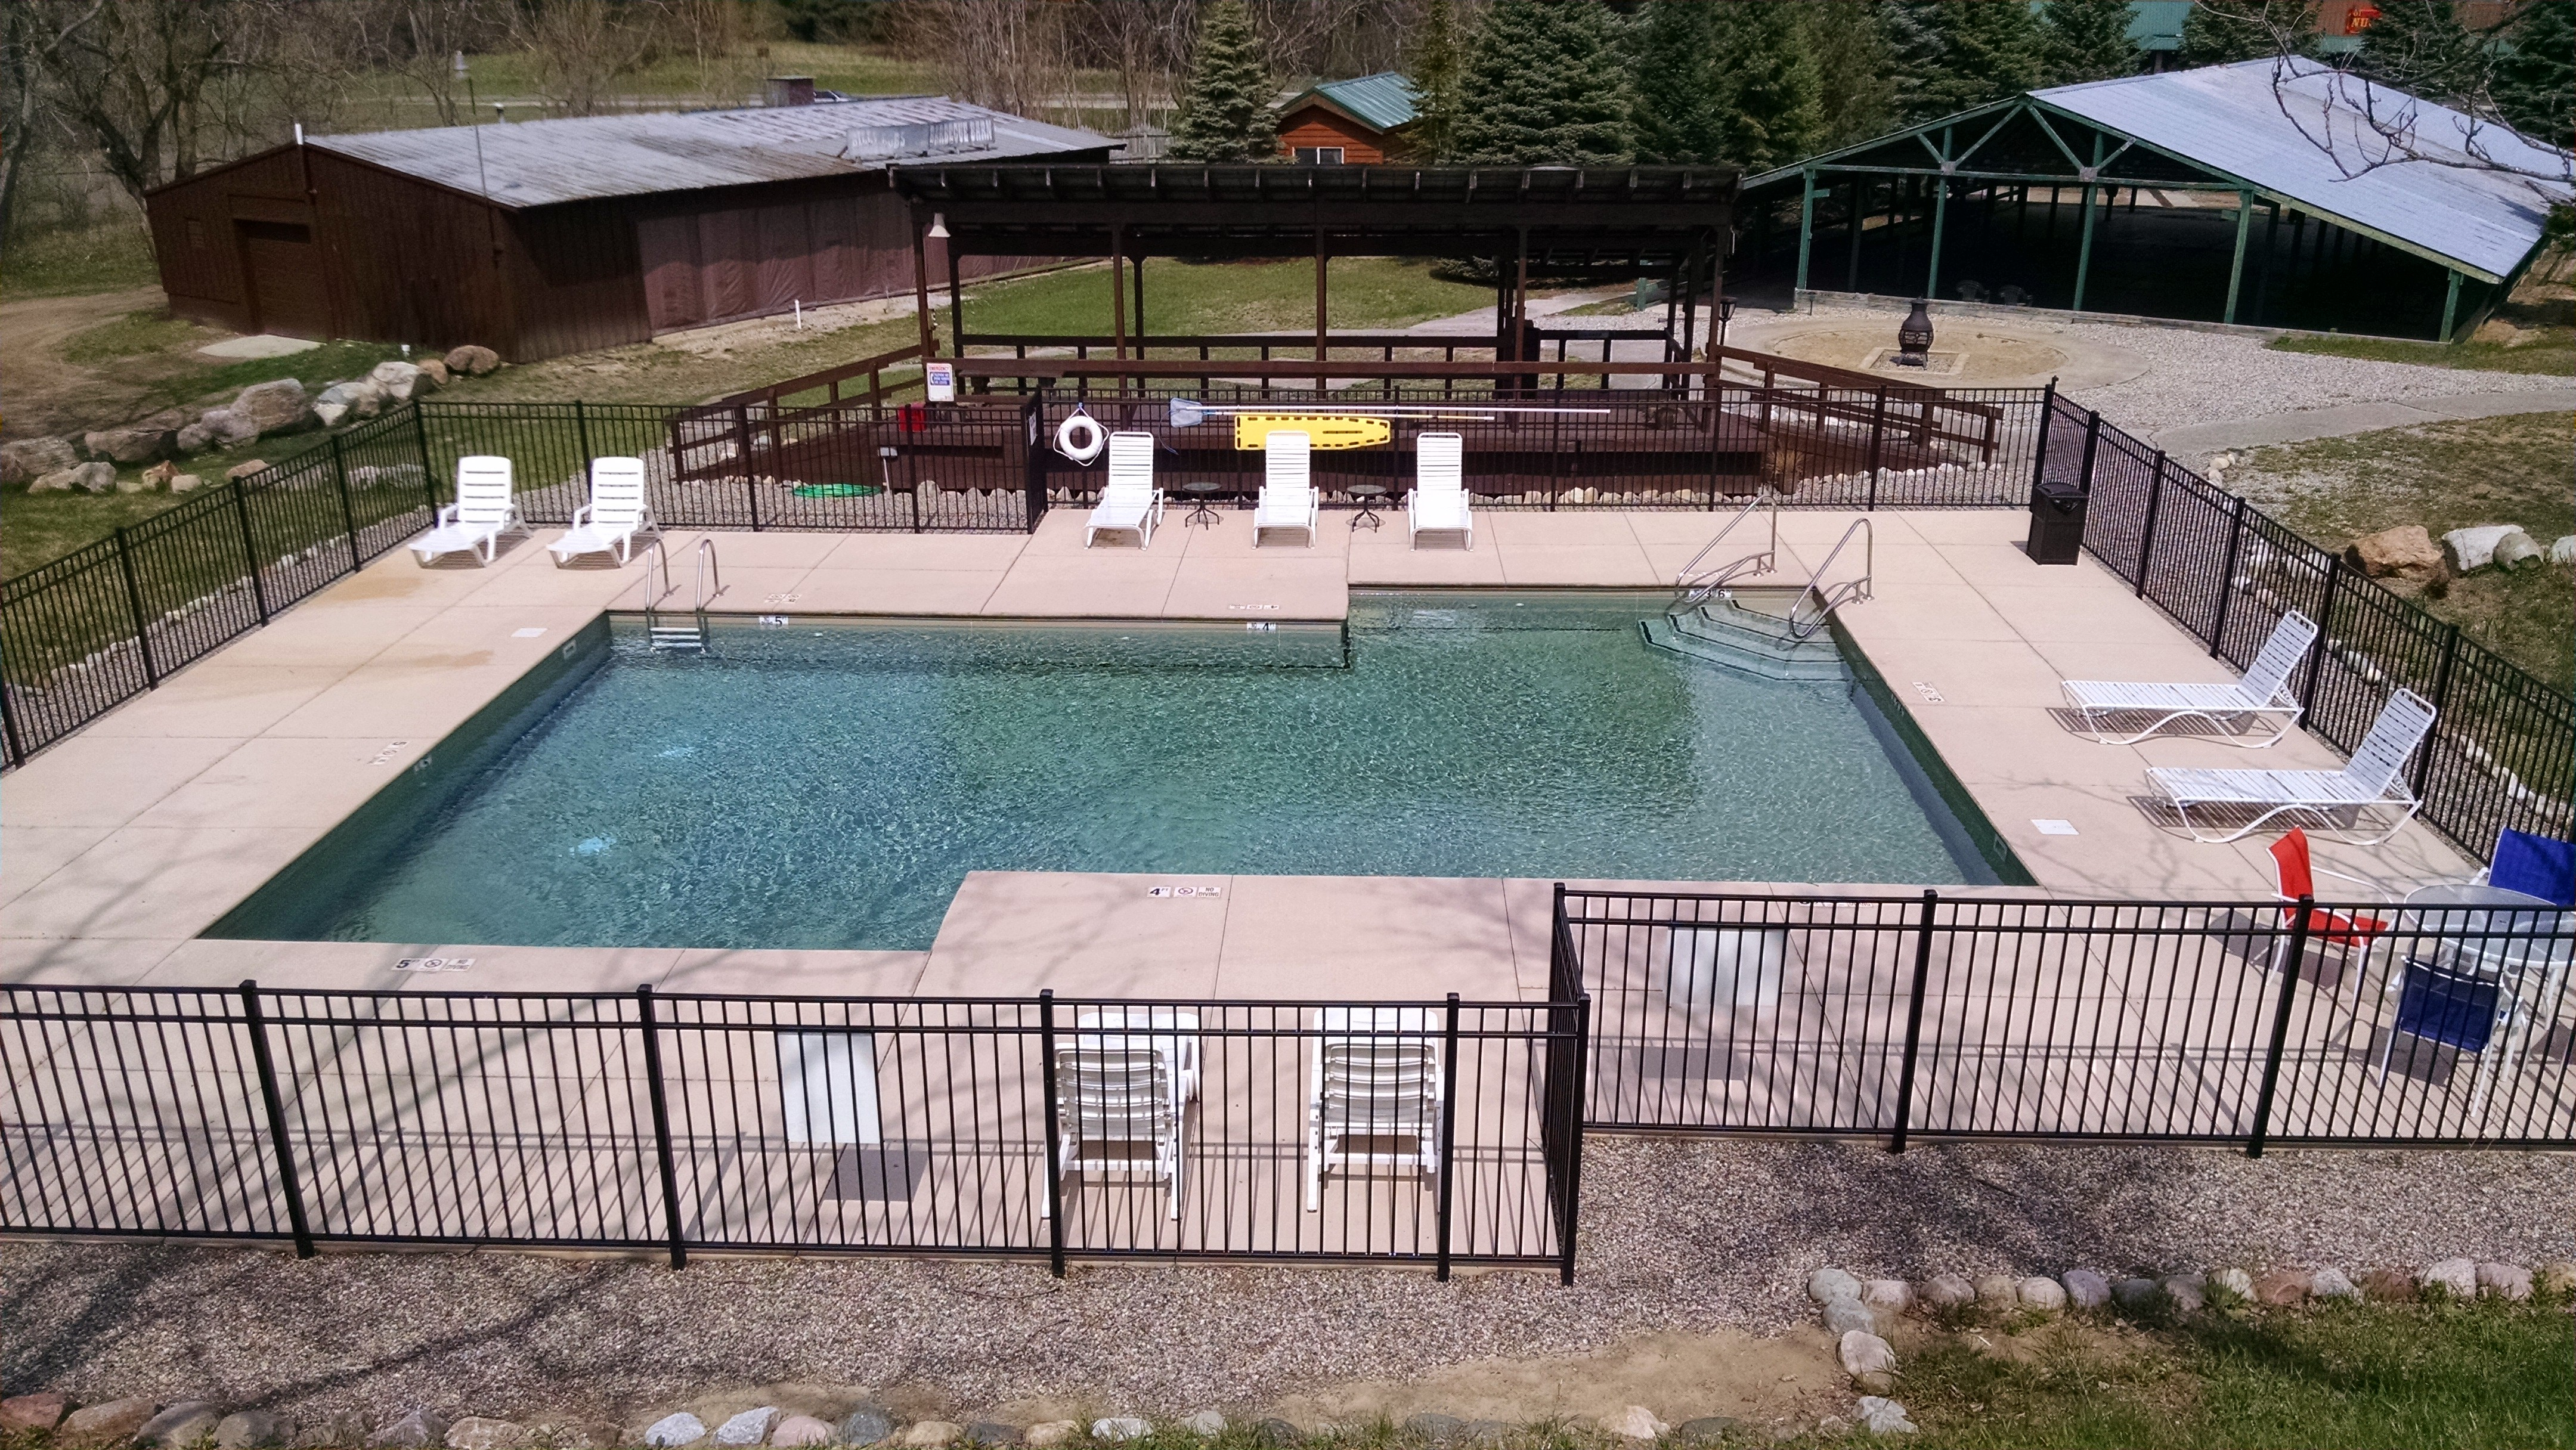 Commercial fiberglass pool